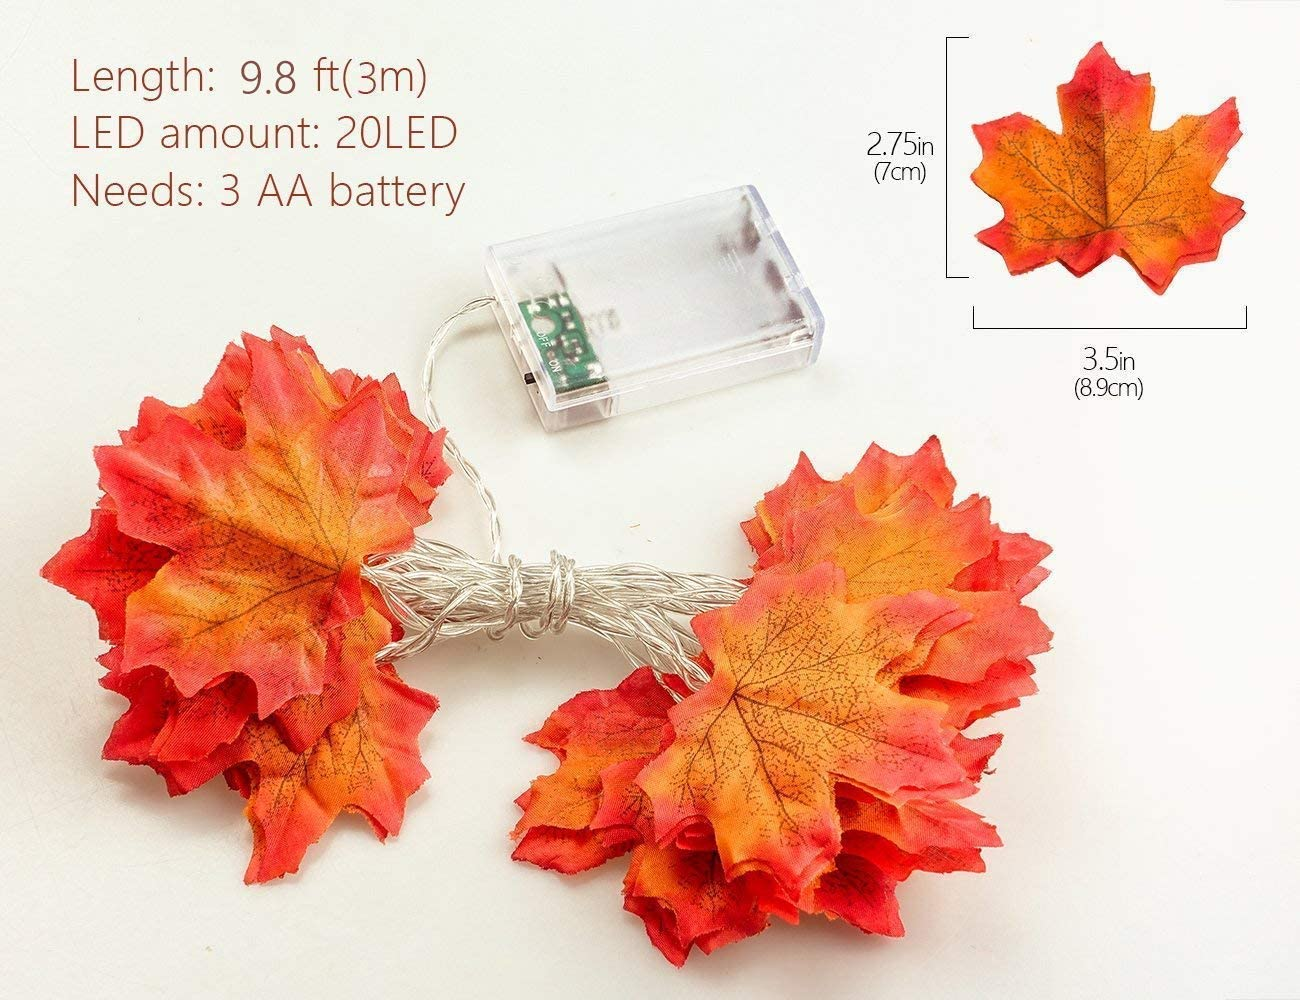 Gotop Fall Maple Leaf String Lights, 9.8 Feet 20 LEDs 3AA Battery Operated Fall Leaves Fairy Lighted Garland Light Up Fall Decor, Perfect for Christmas Thanksgiving Party Indoor Outdoor